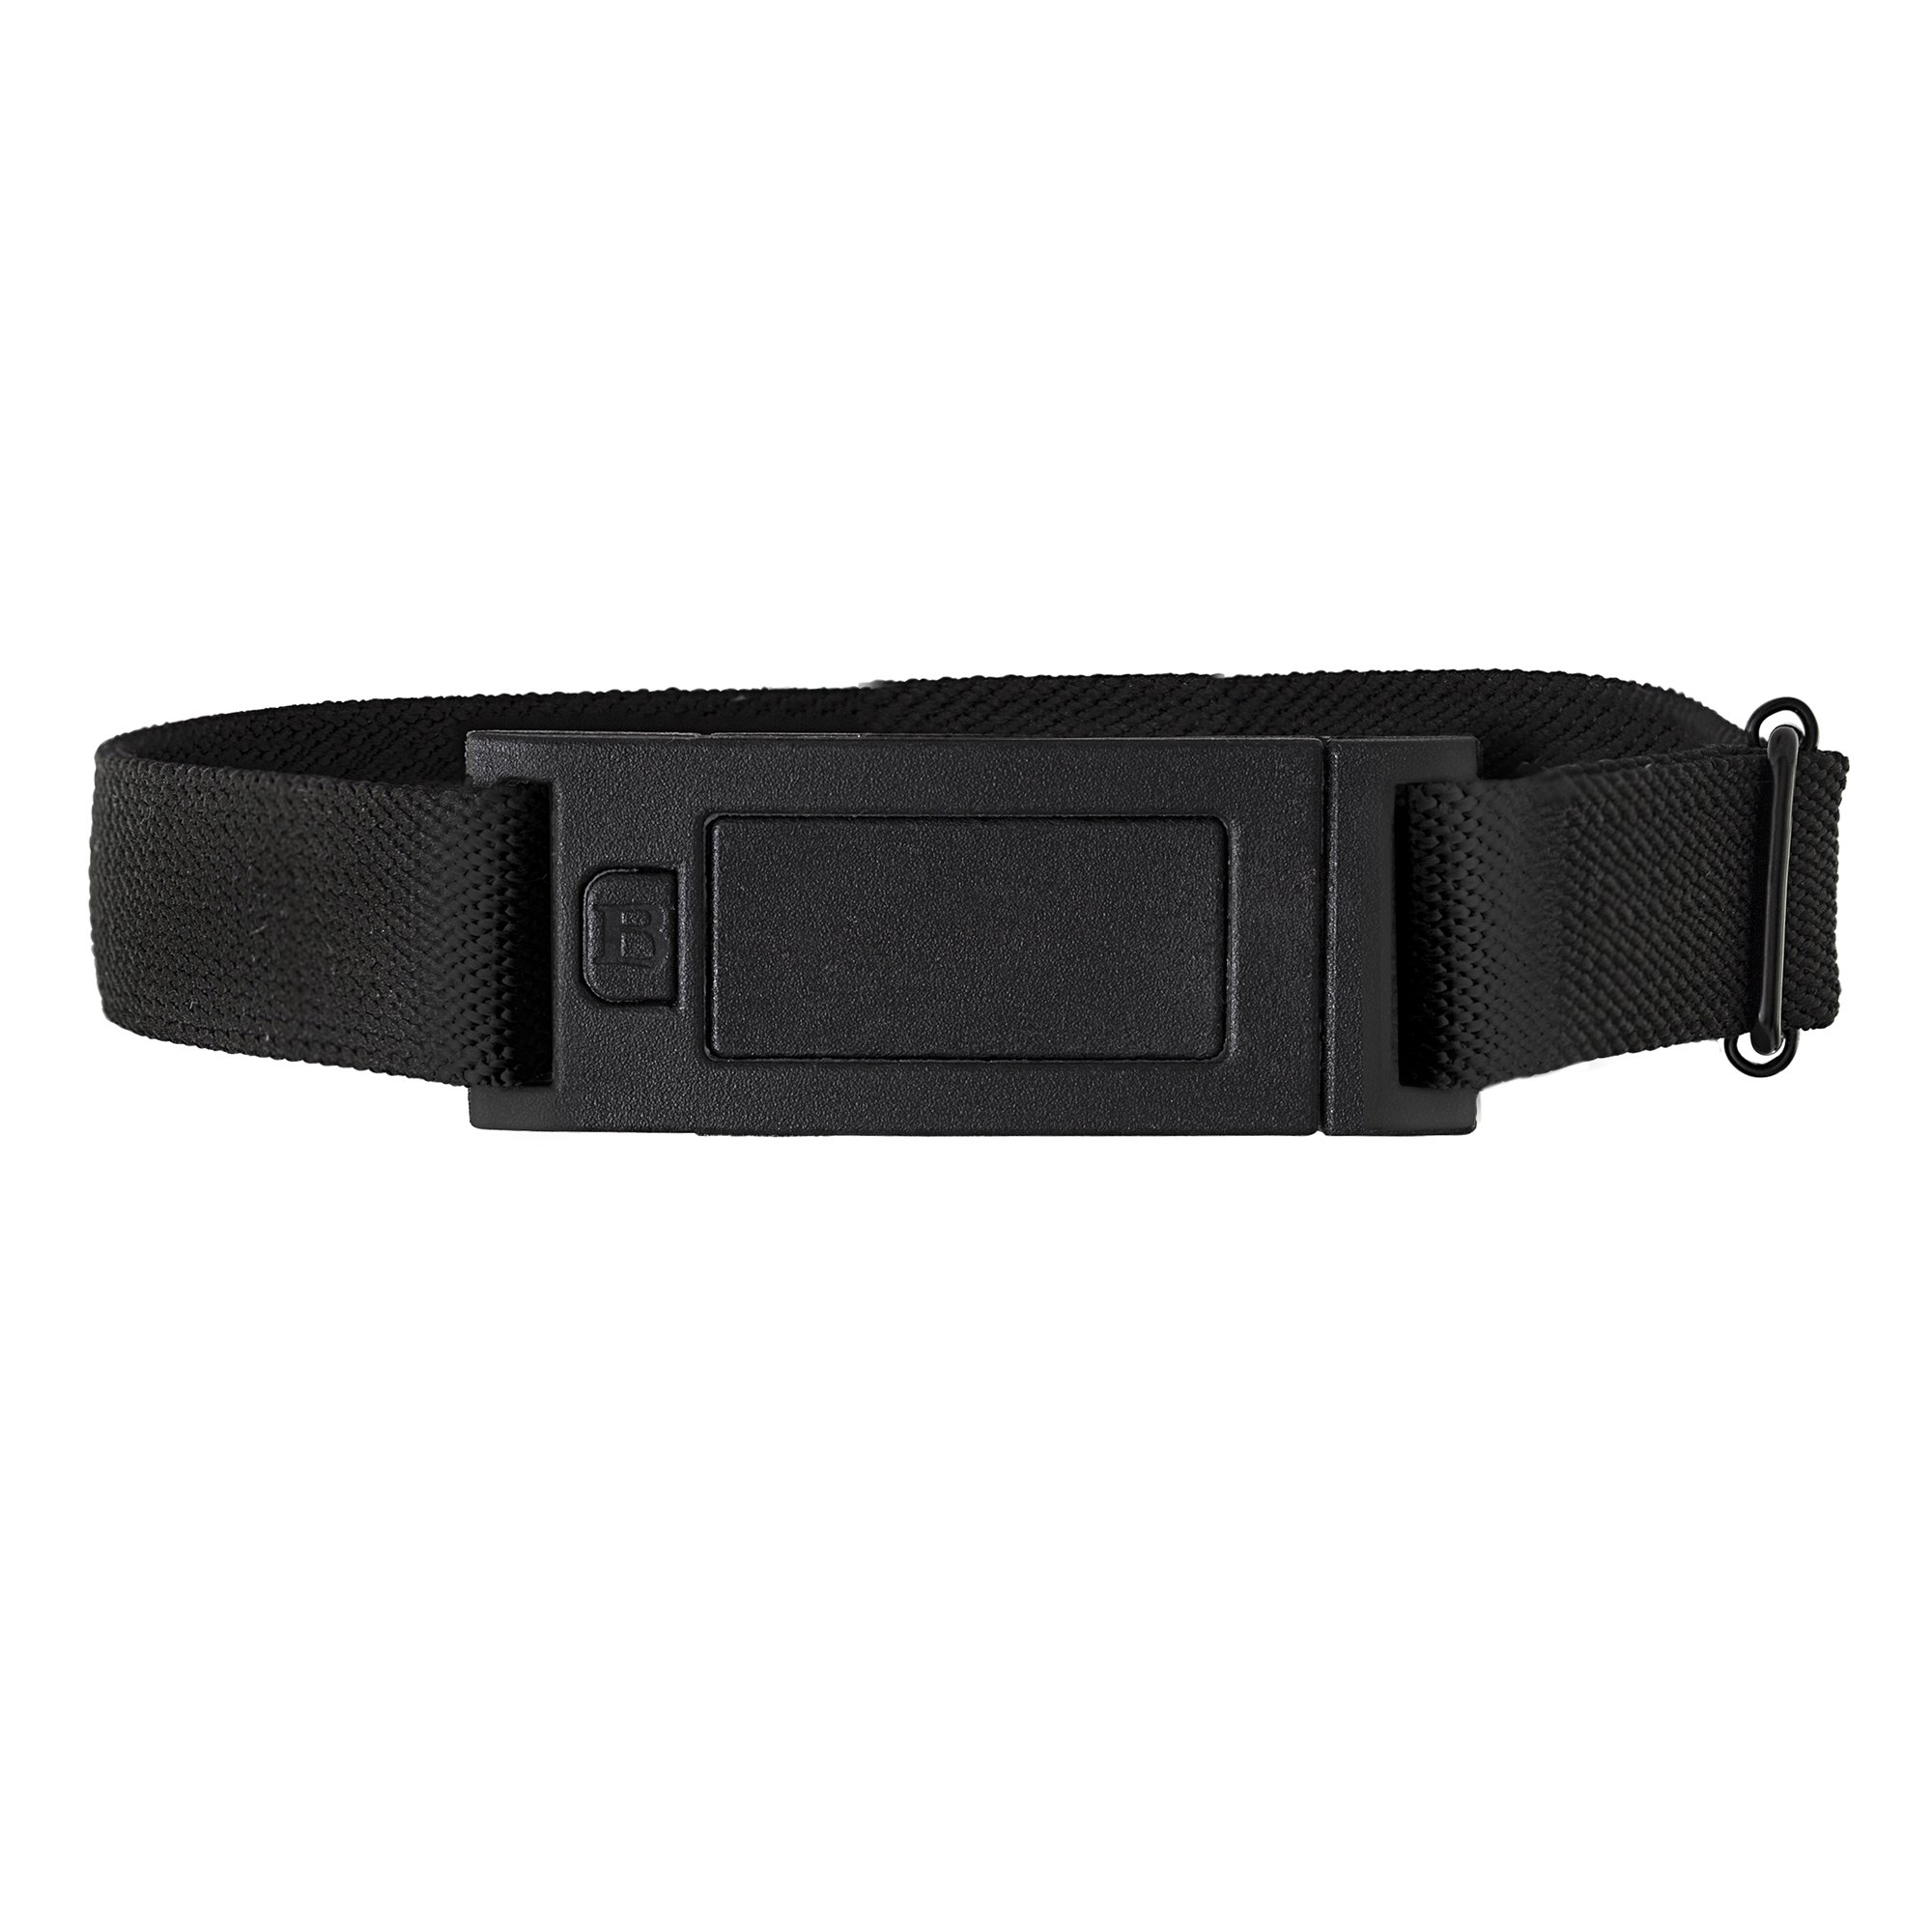 Beltaway NARROW Woman's Flat Buckle Belt, Adjustable Stretch Belt BLACK One Size (0-14)